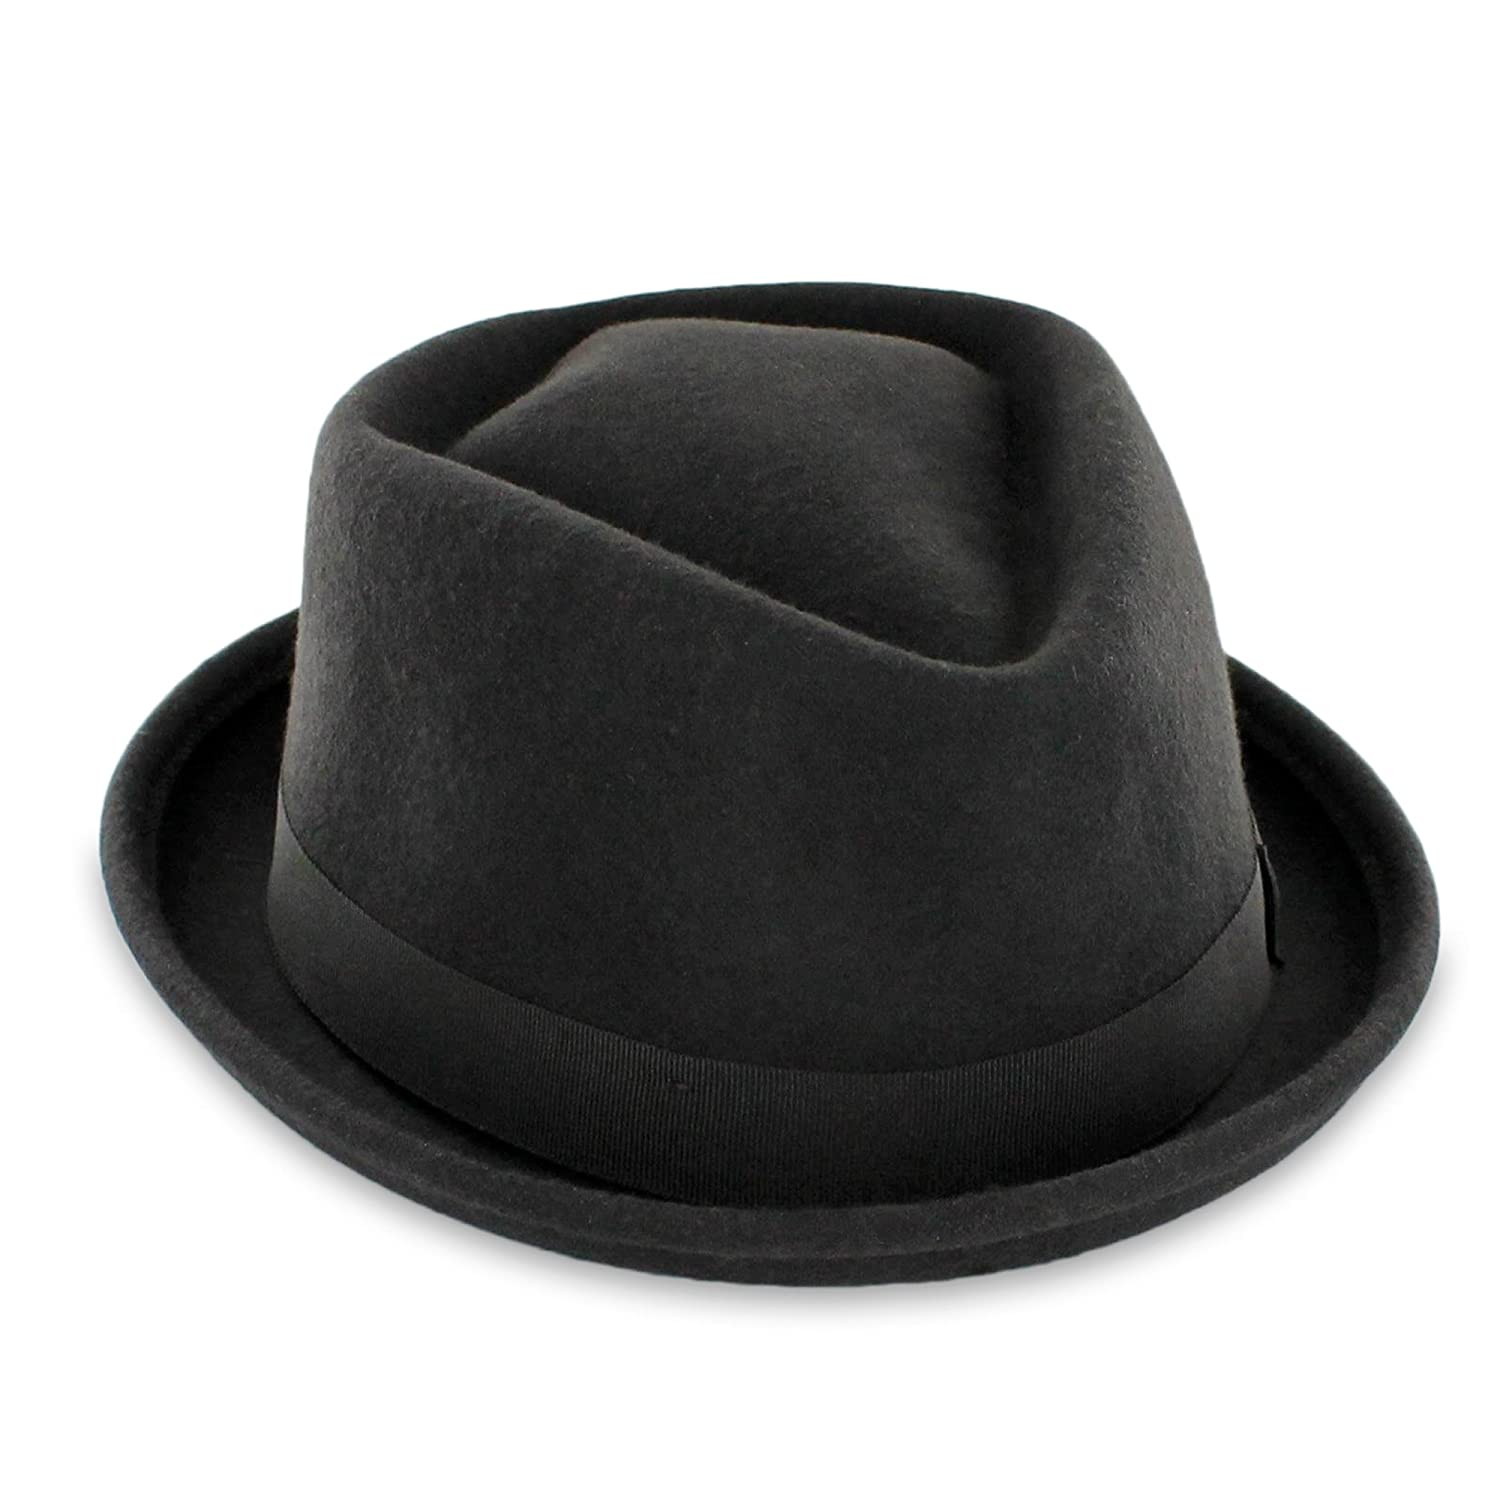 0aed6ac0adf47e Belfry Crushable Porkpie Fedora Hat Men's Vintage Style 100% Pure Wool in  Black Brown Grey Navy Pecan and Striped Band at Amazon Men's Clothing store: